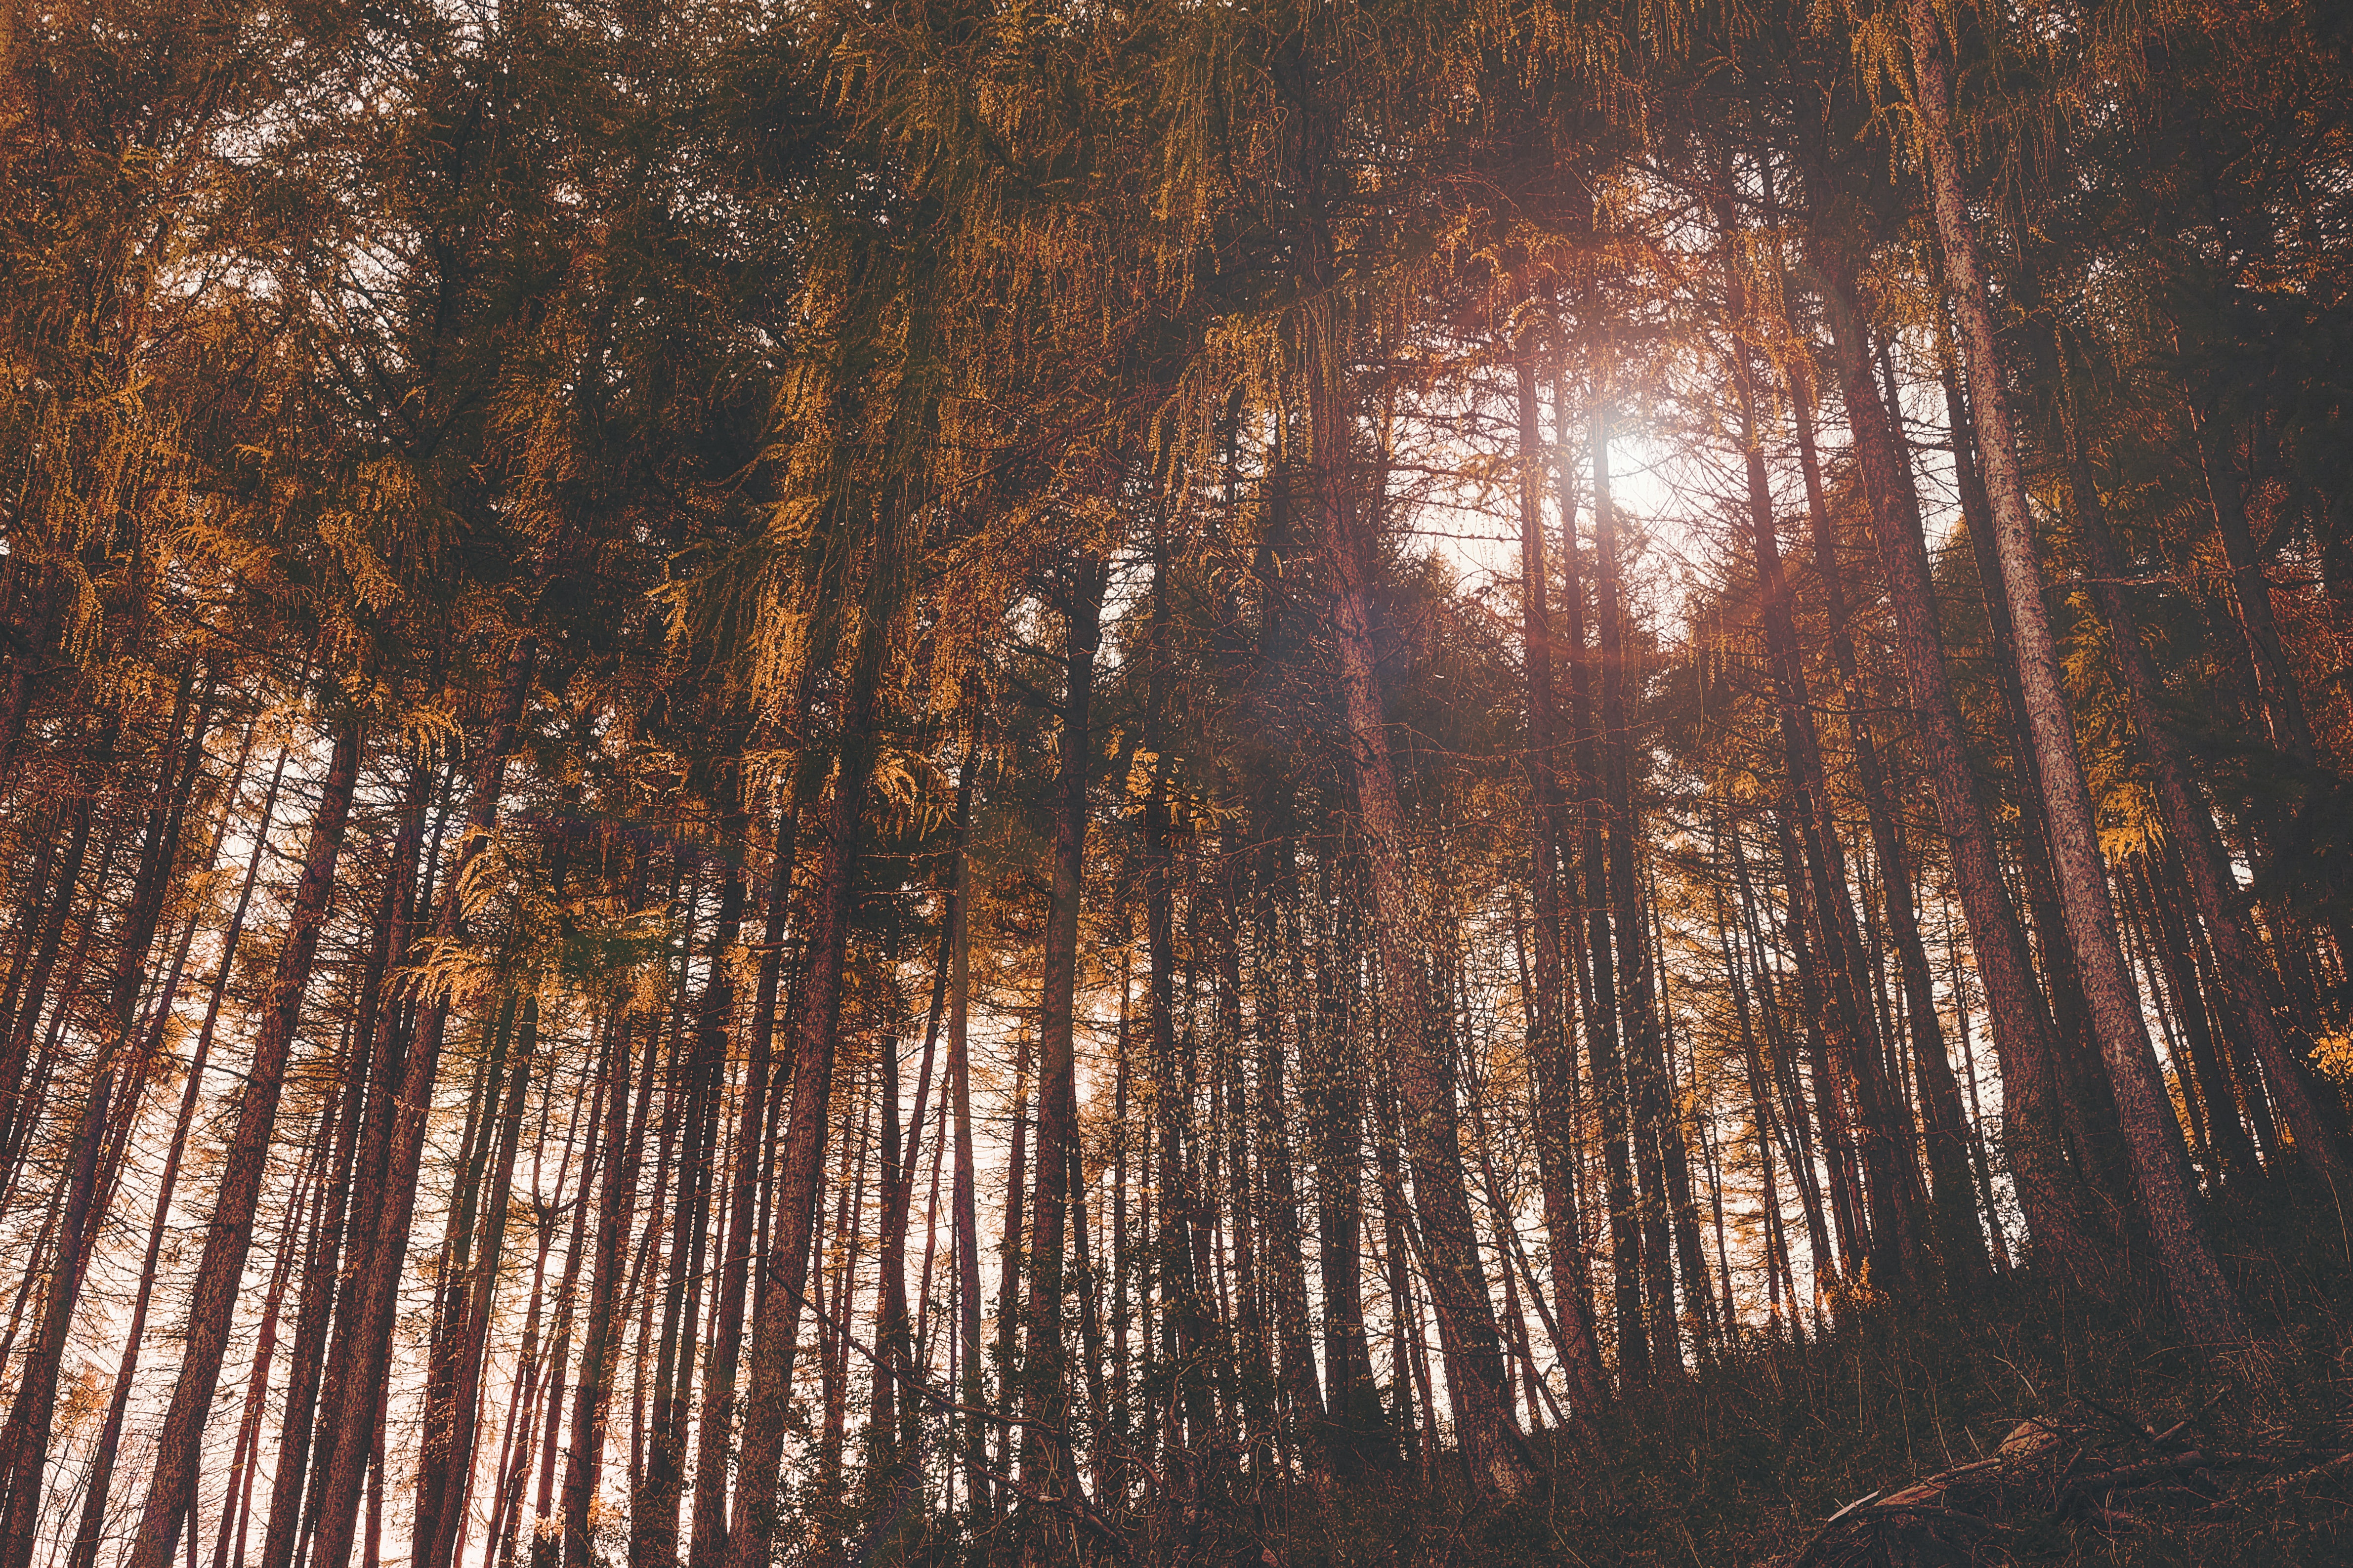 nature photo of tall trees during daytime